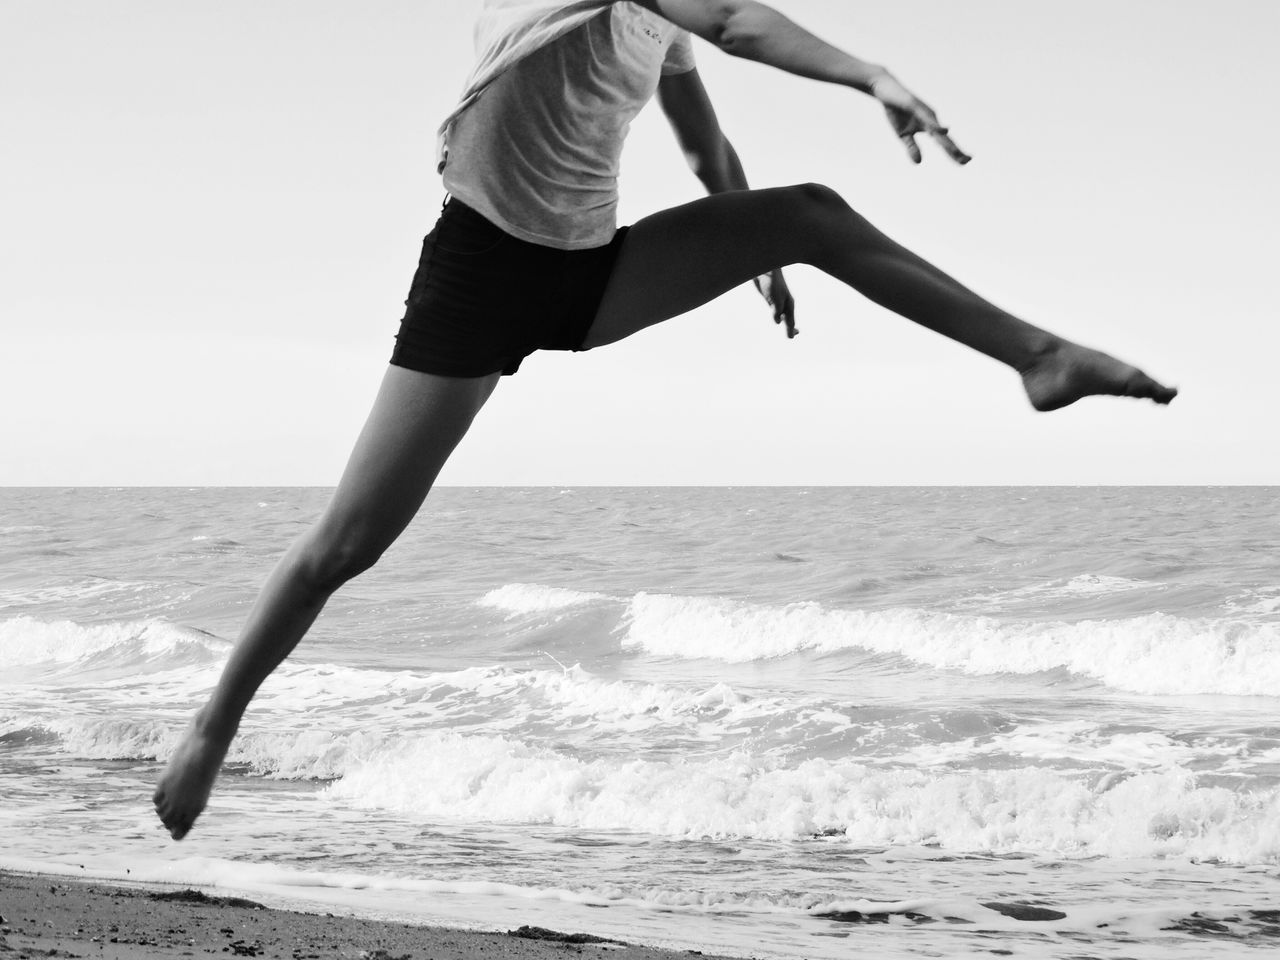 Welcome To Black Endurance Strength Young Healthy Healthy Lifestyle Sand Water Jumping Sports Sport Athletic Slim Woman Sportive Motion Vitality Athlete Mid-air Energy Lifestyles Beach Running Sprinting The Street Photographer - 2017 EyeEm Awards